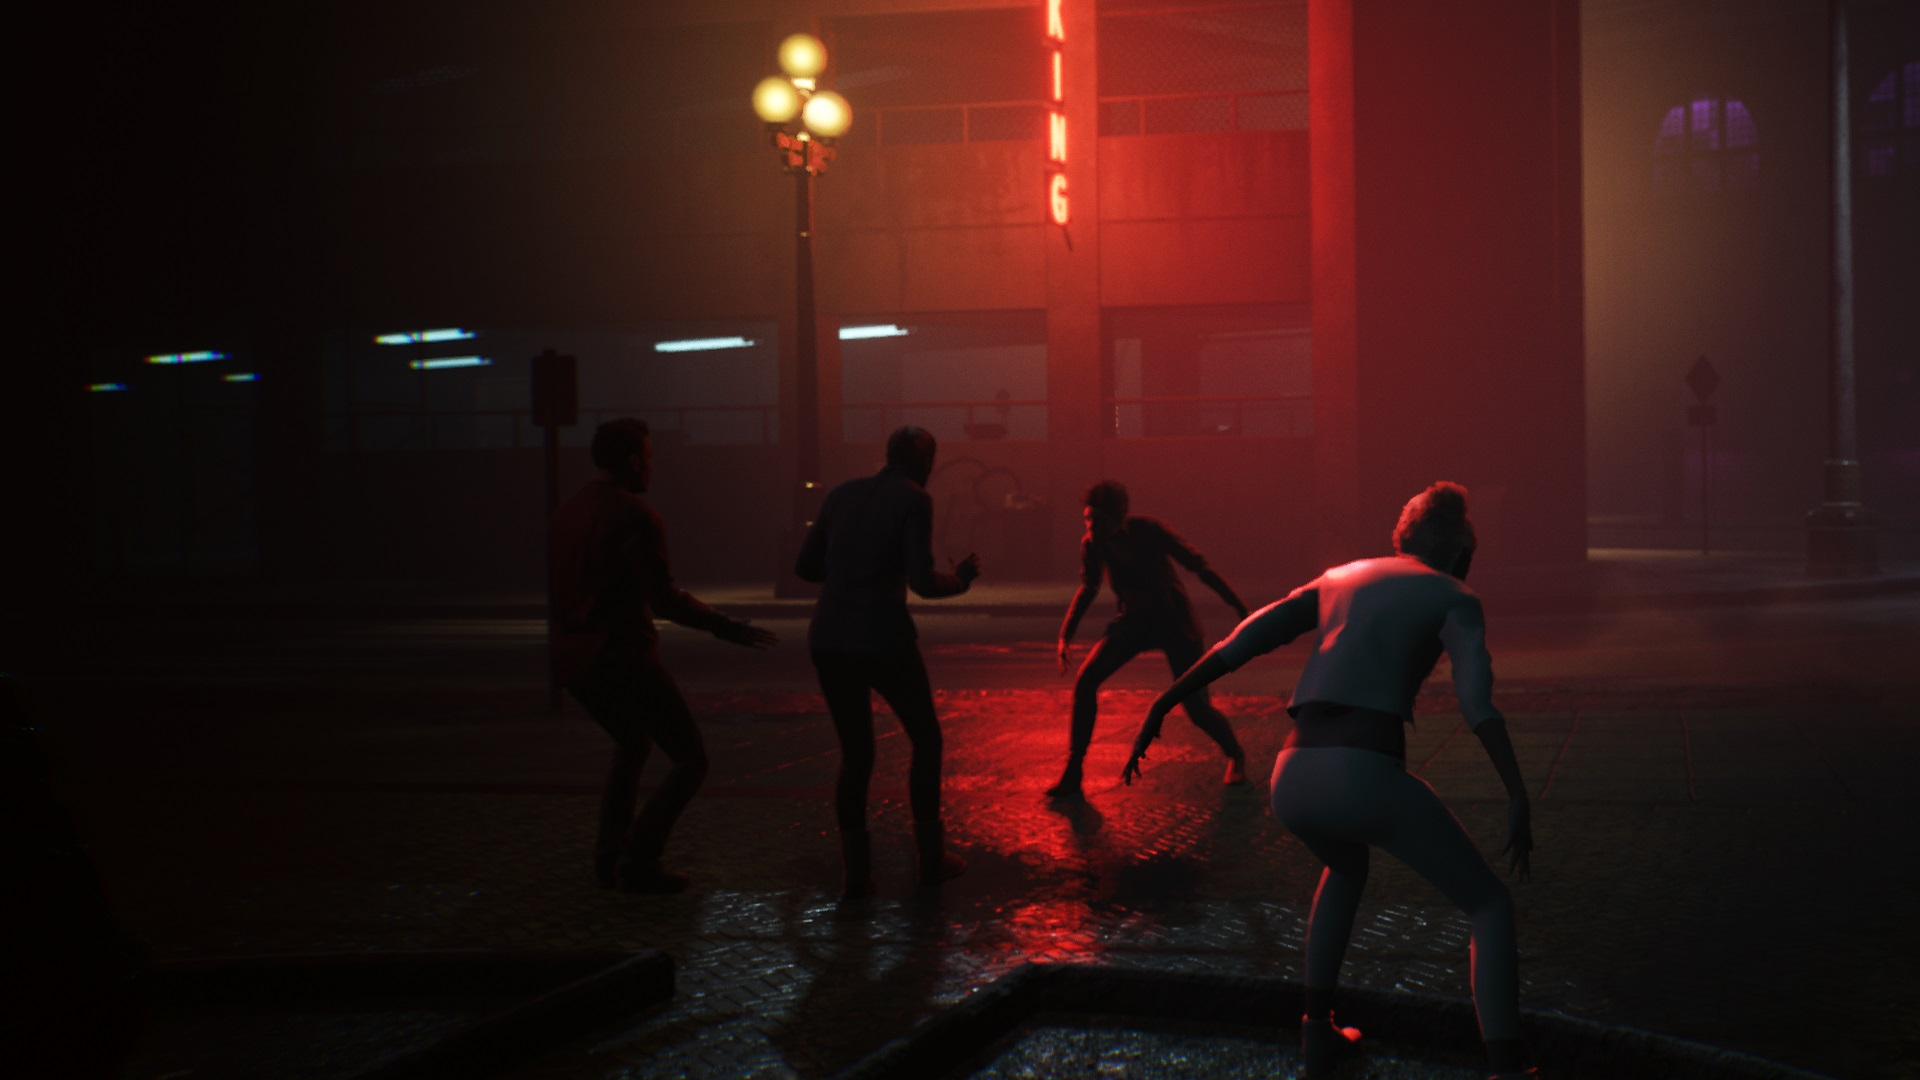 Vampire: The Masquerade—Bloodlines 2's first abilities have